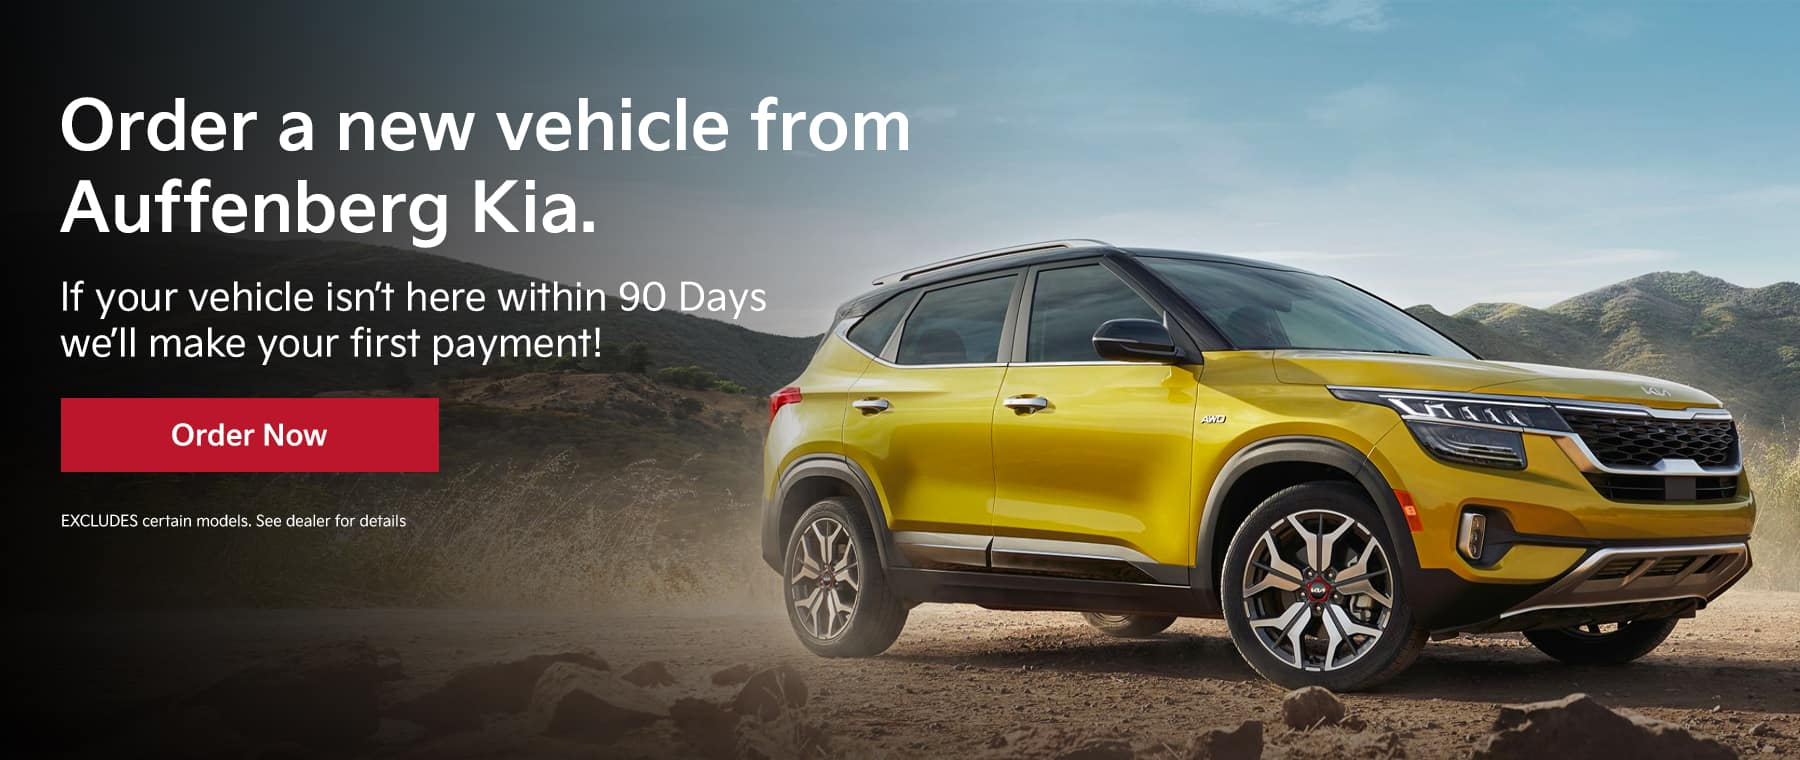 ORDER A NEW vehicle FROM AUFFENBERG Kia . IF YOUR VEHICLE ISN'T HERE WITHIN 90 DAYS WE'LL MAKE YOUR FIRST PAYMENT Disclaimer:EXCLUDES certain models. See dealer for details